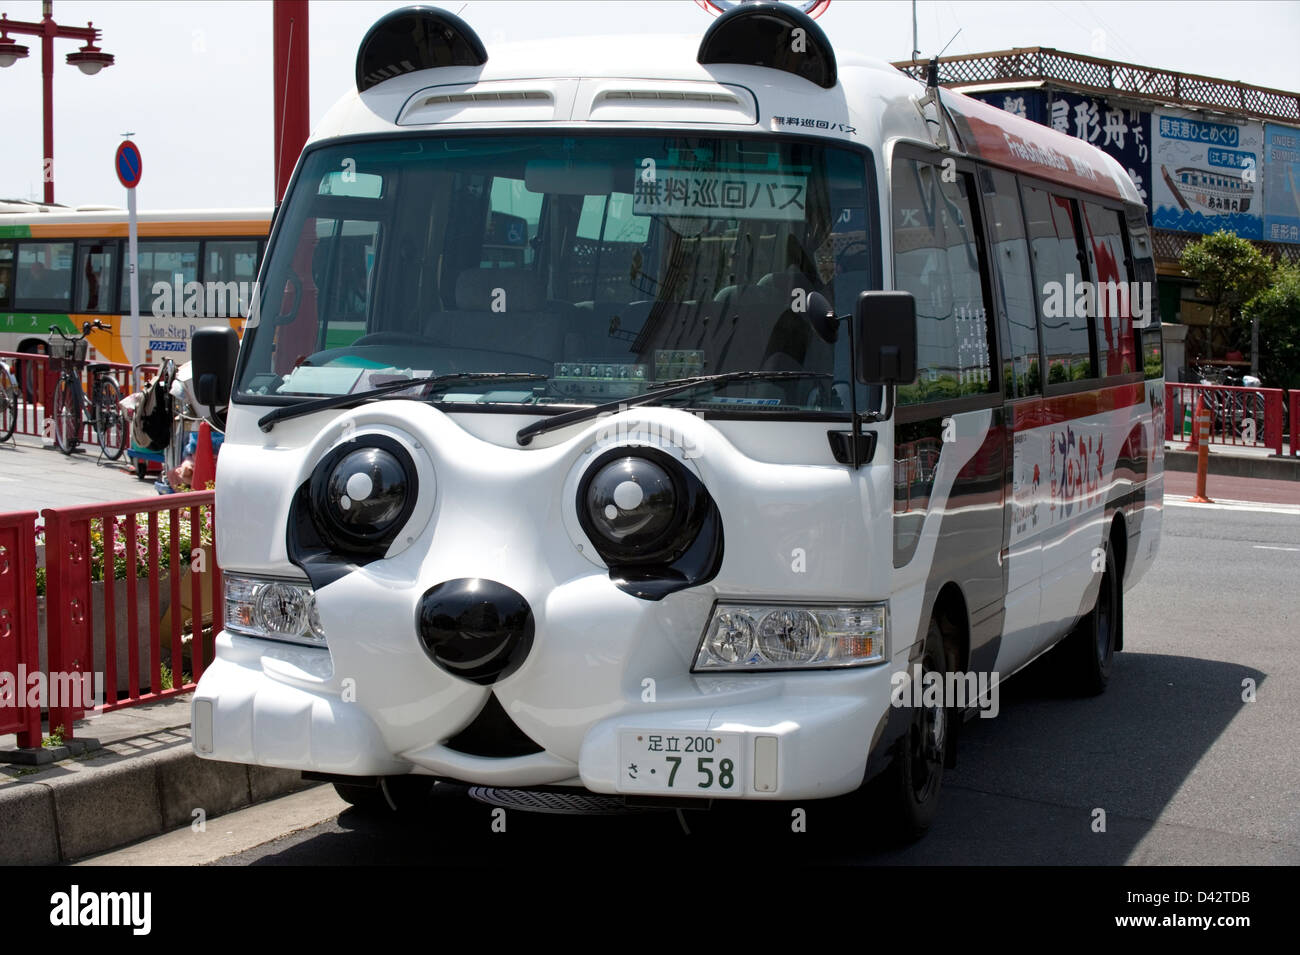 A free shuttle bus in the shape of a panda bear takes tourists around Tokyo sightseeing spots. - Stock Image